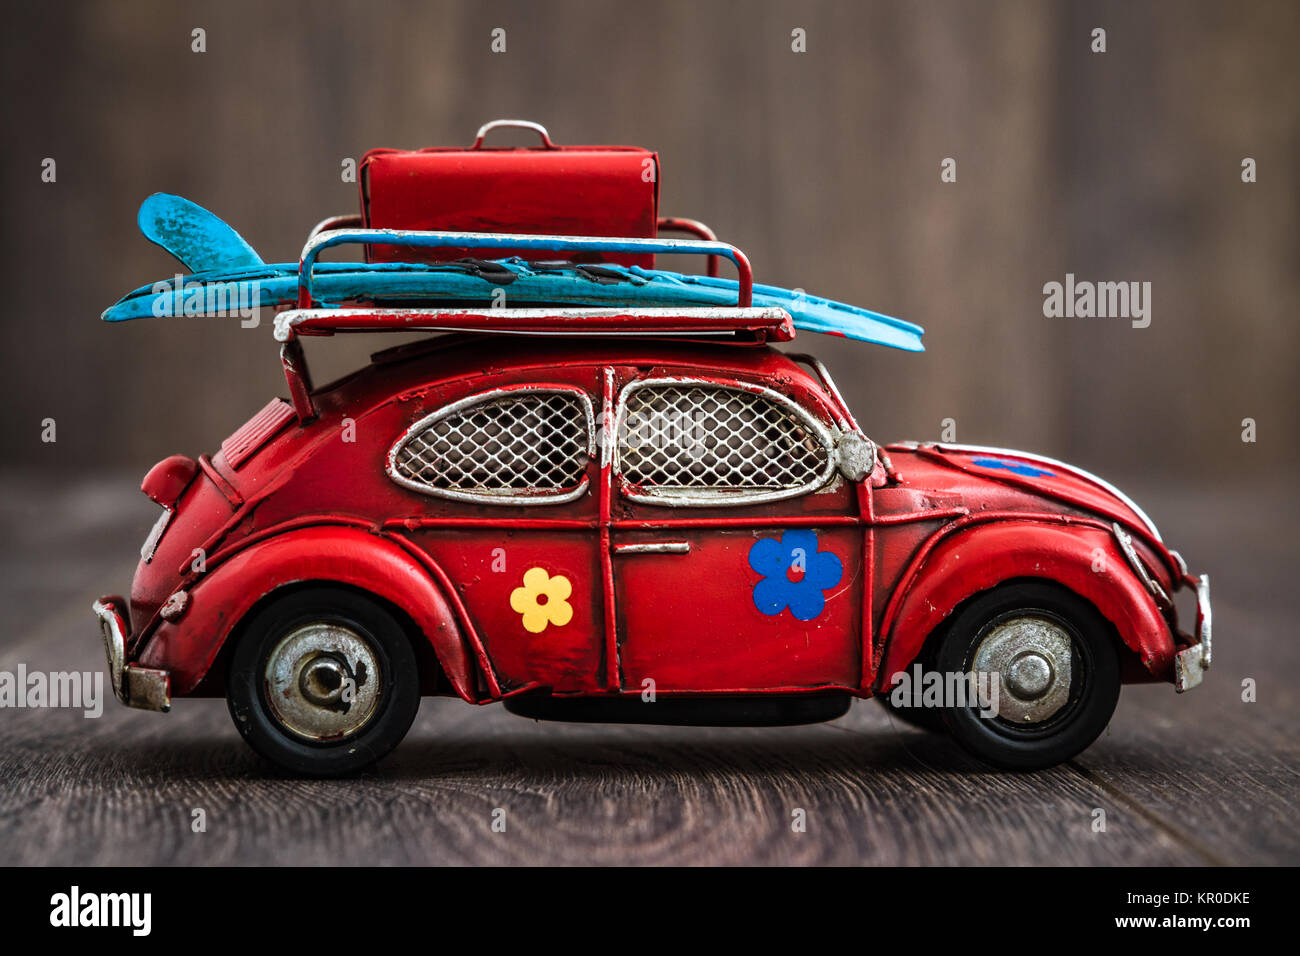 Classic Mini Red Car Model on Brown Background - Stock Image